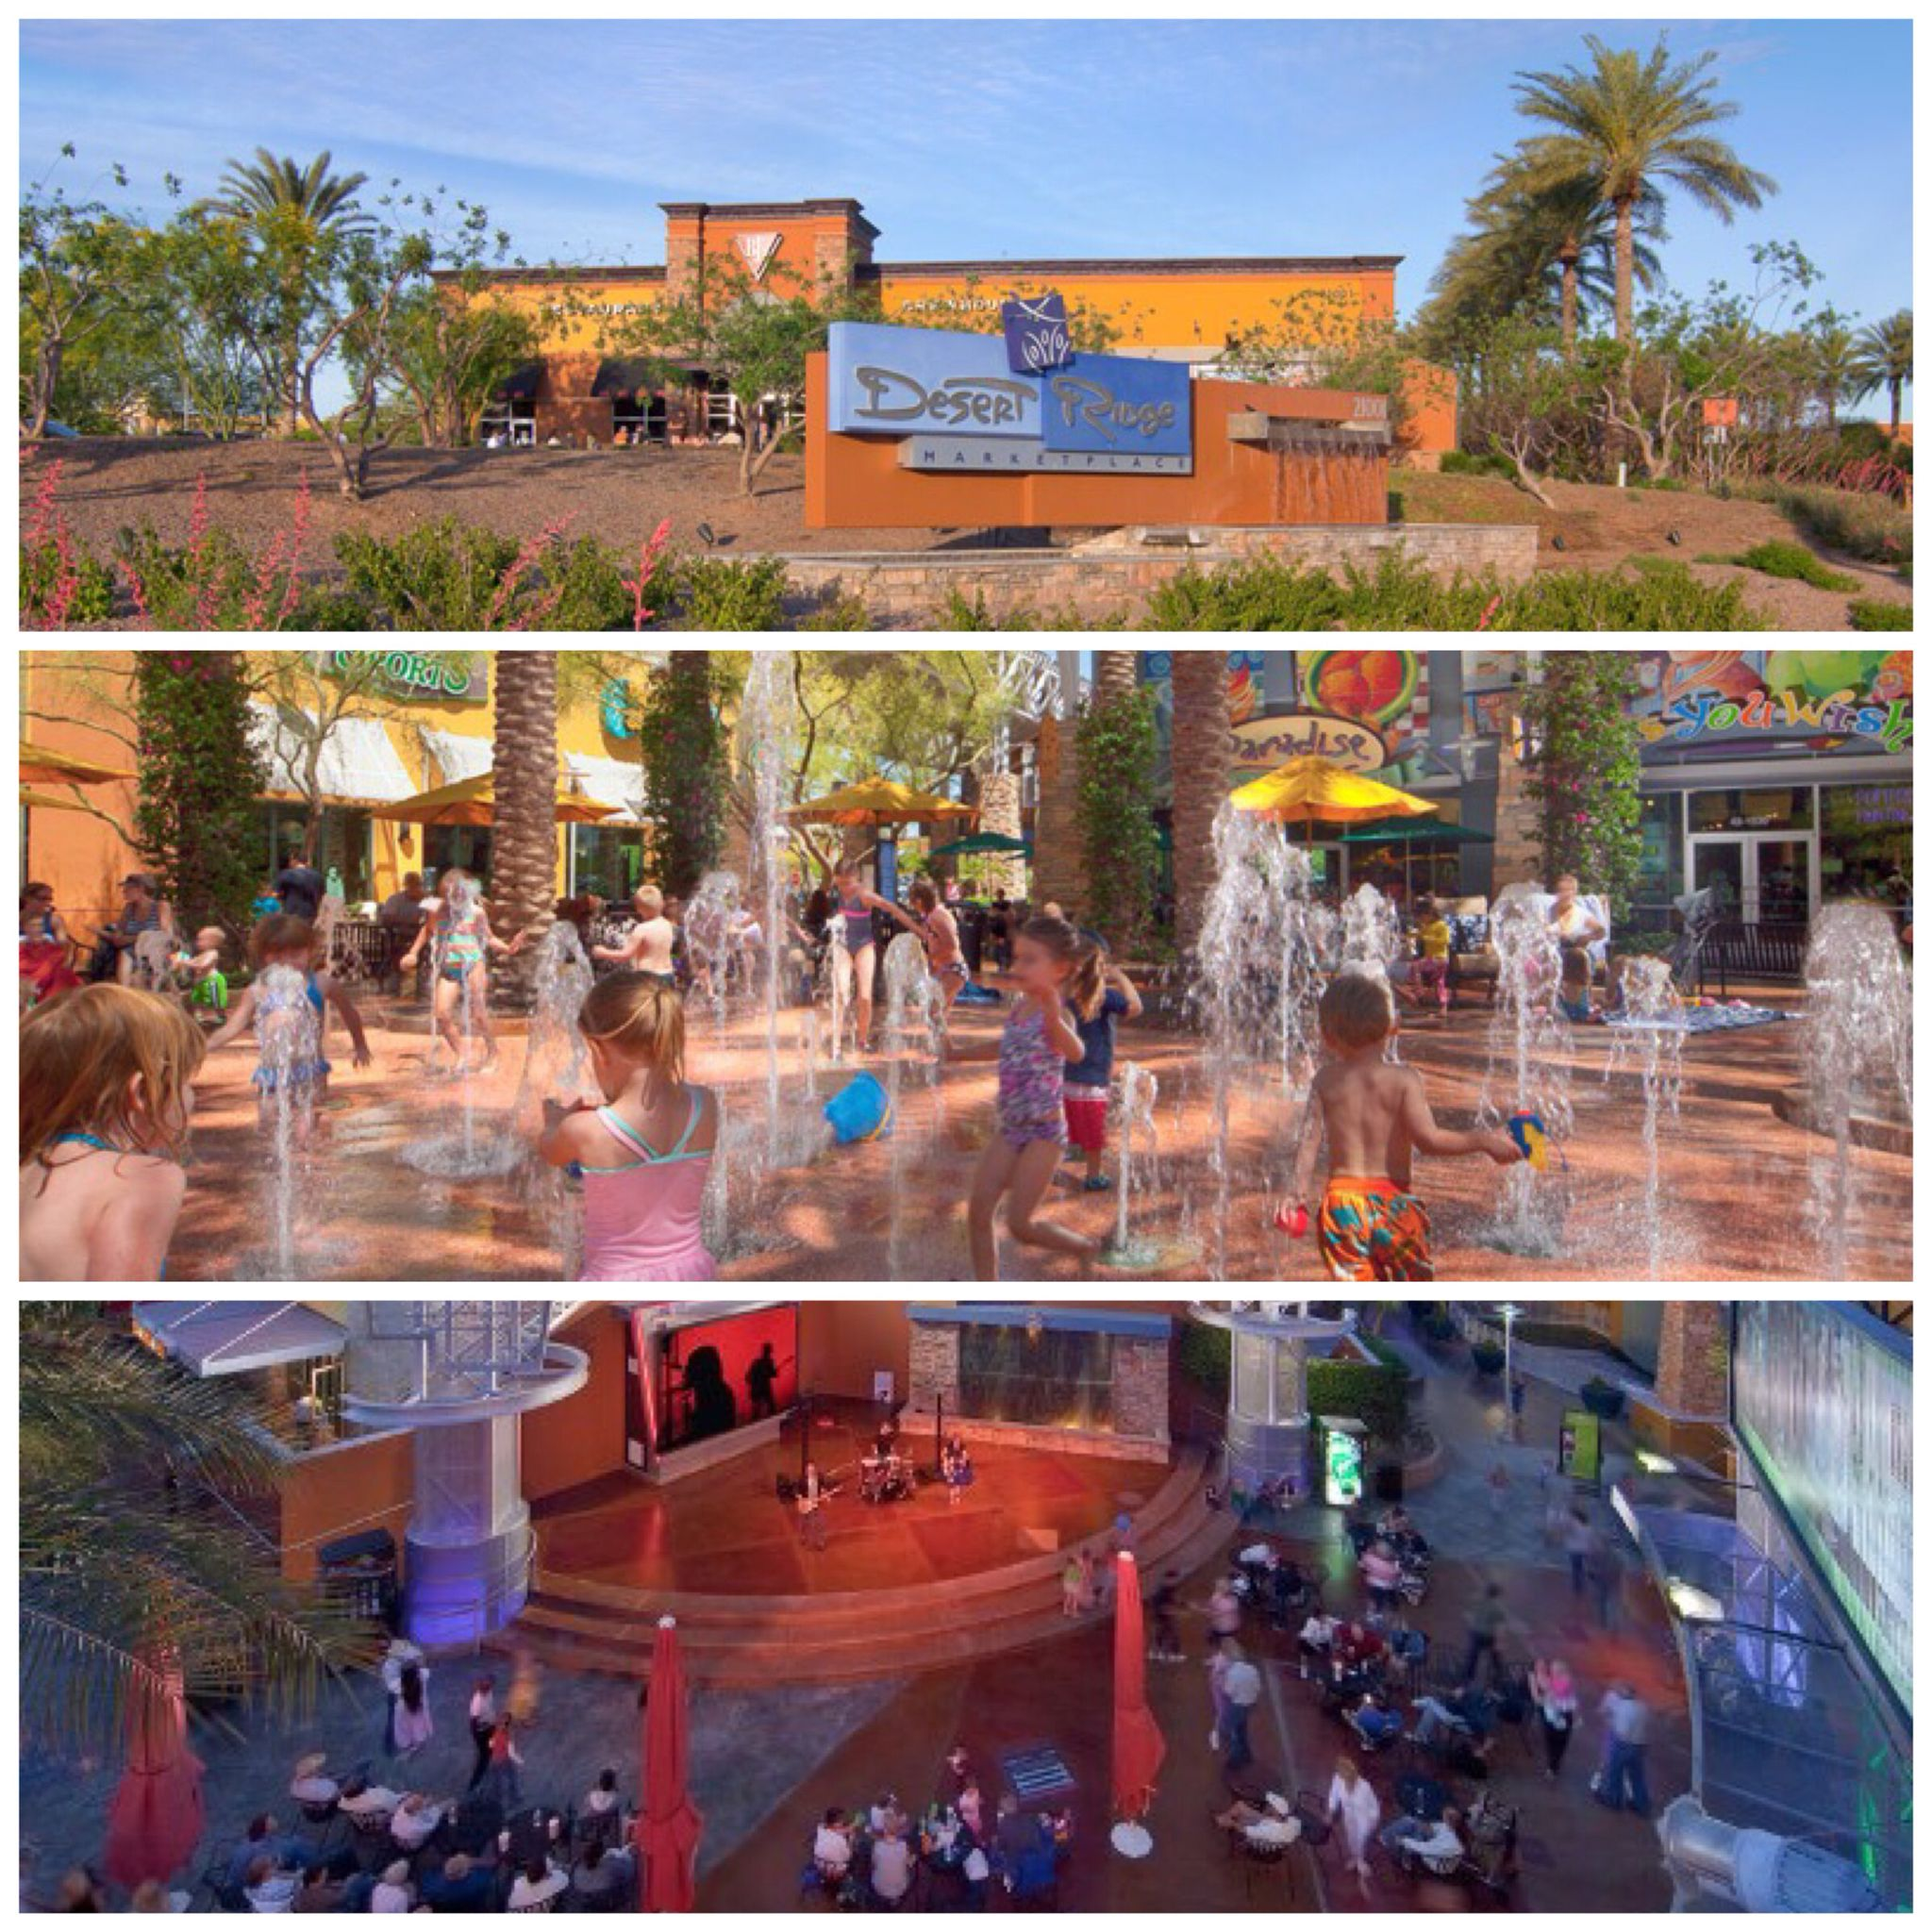 Desert Ridge Marketplace Eat Play Listen To Free Live Music At The District Stage Over 100 S Restaurants One Location